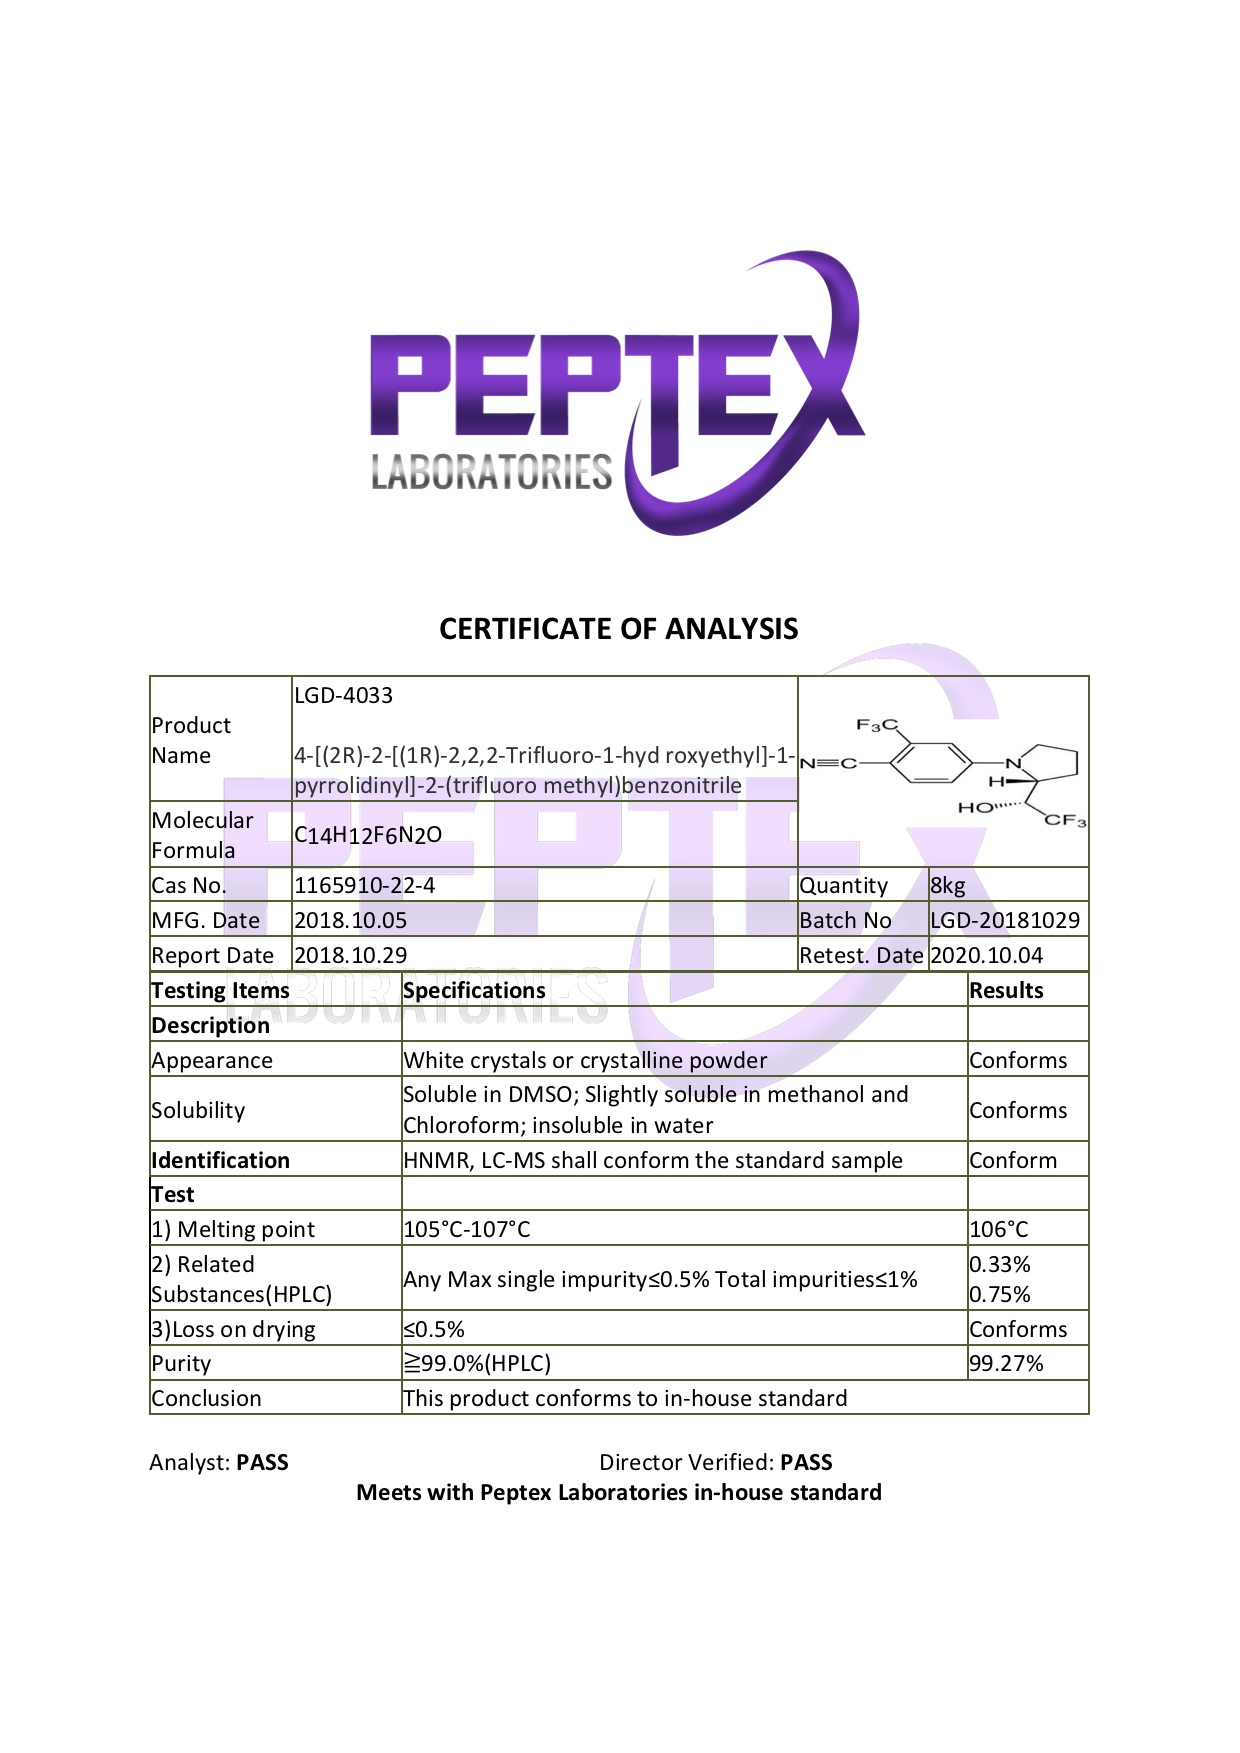 Lab Reports & Certification